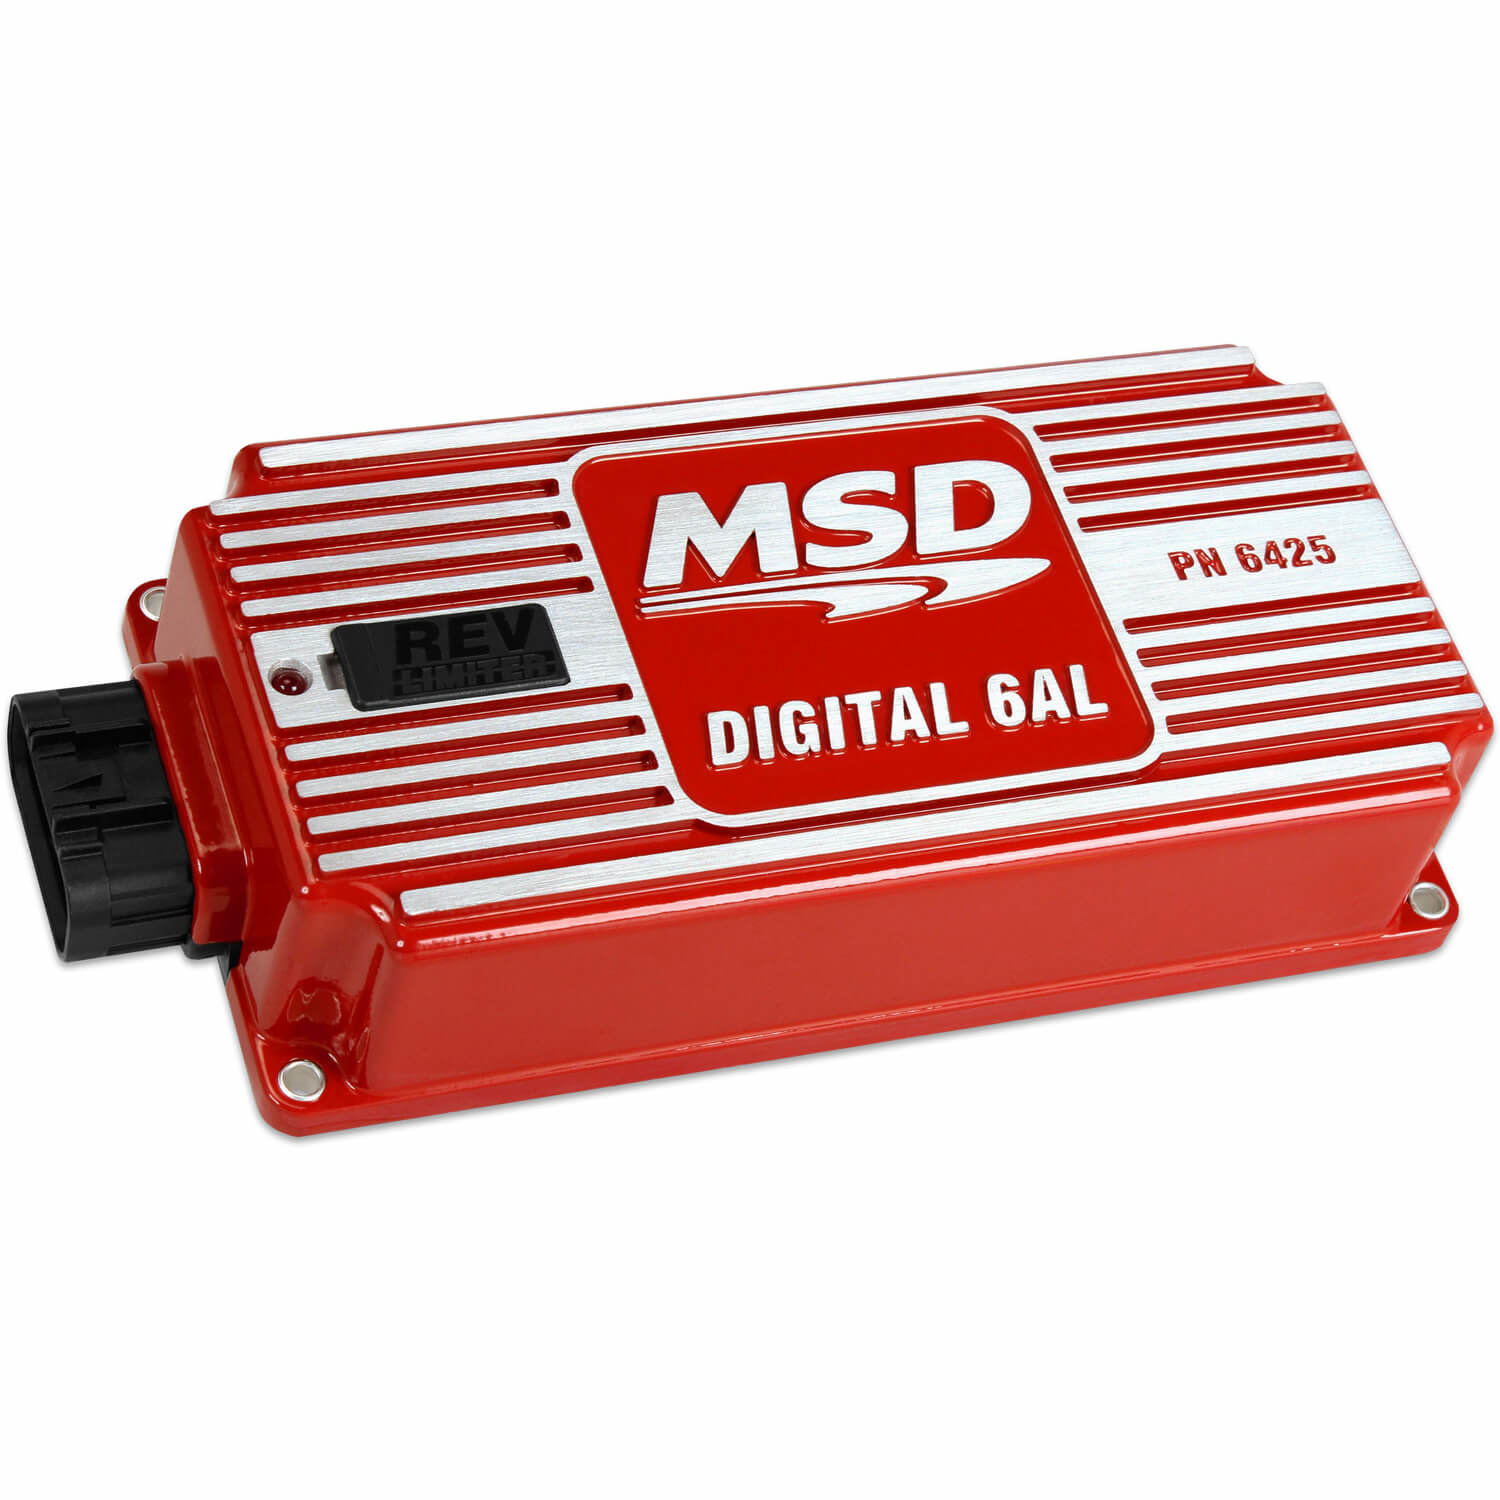 MSD Ignition 6425 Ignitions | Ignitionproducts eu